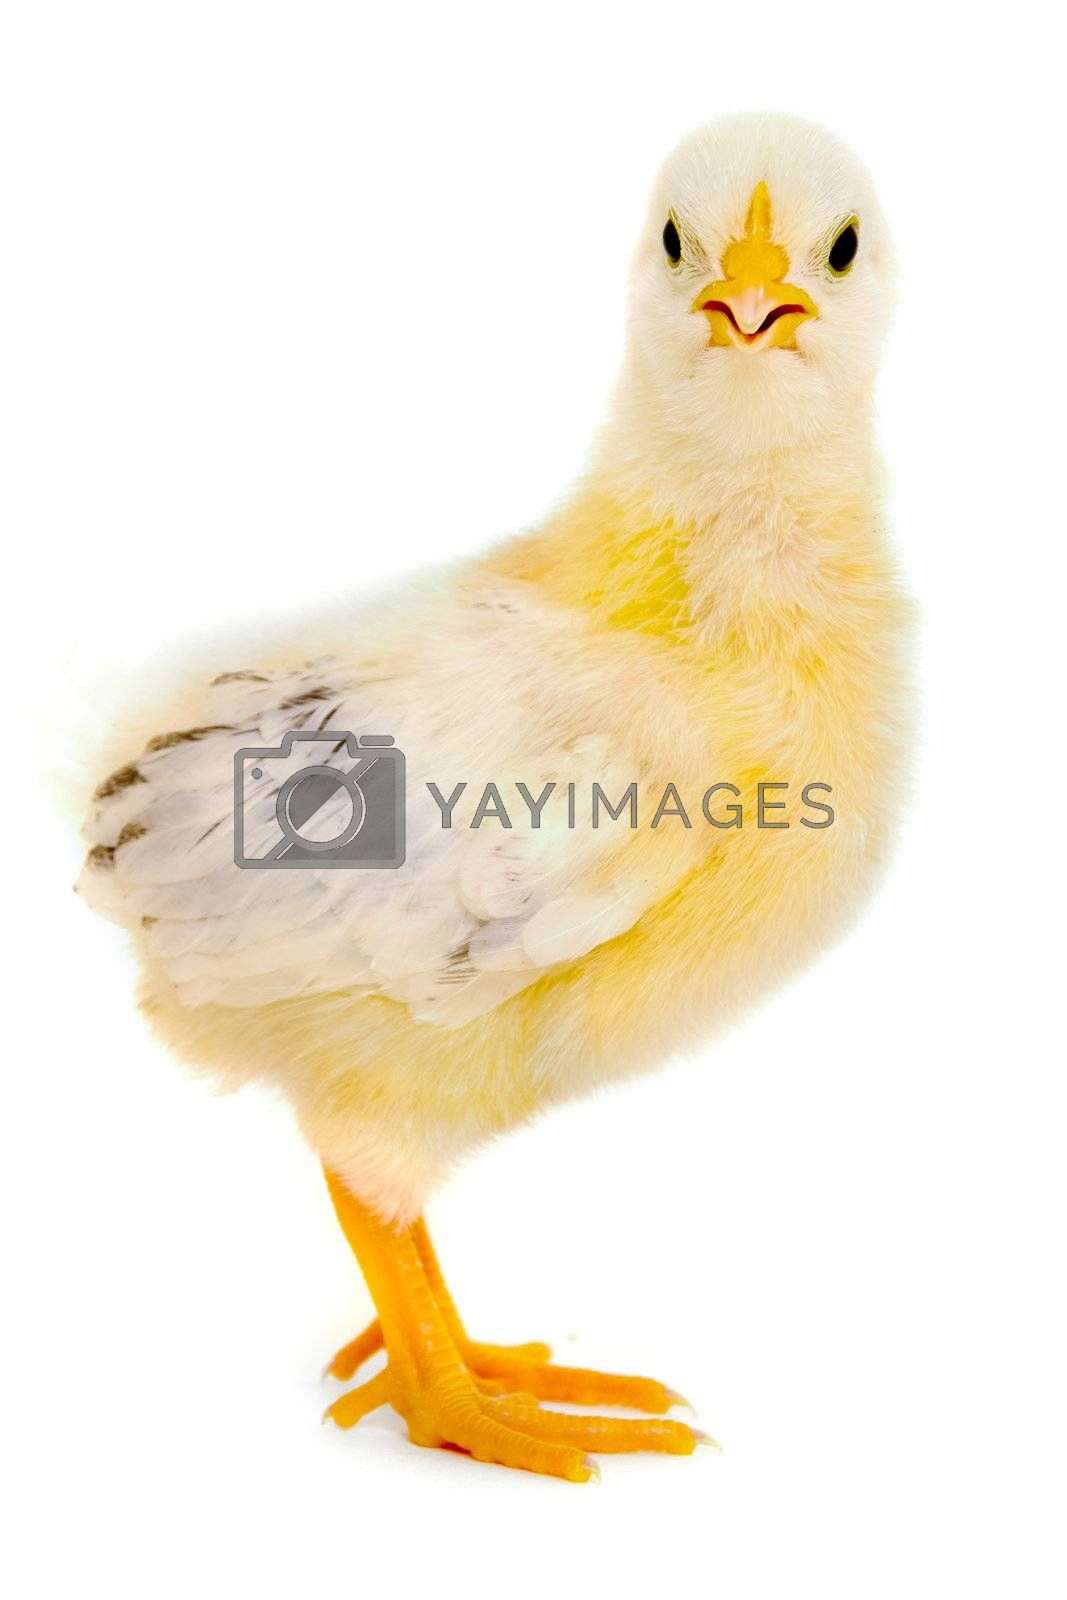 Sweet baby chicken is standing on a clean white background.